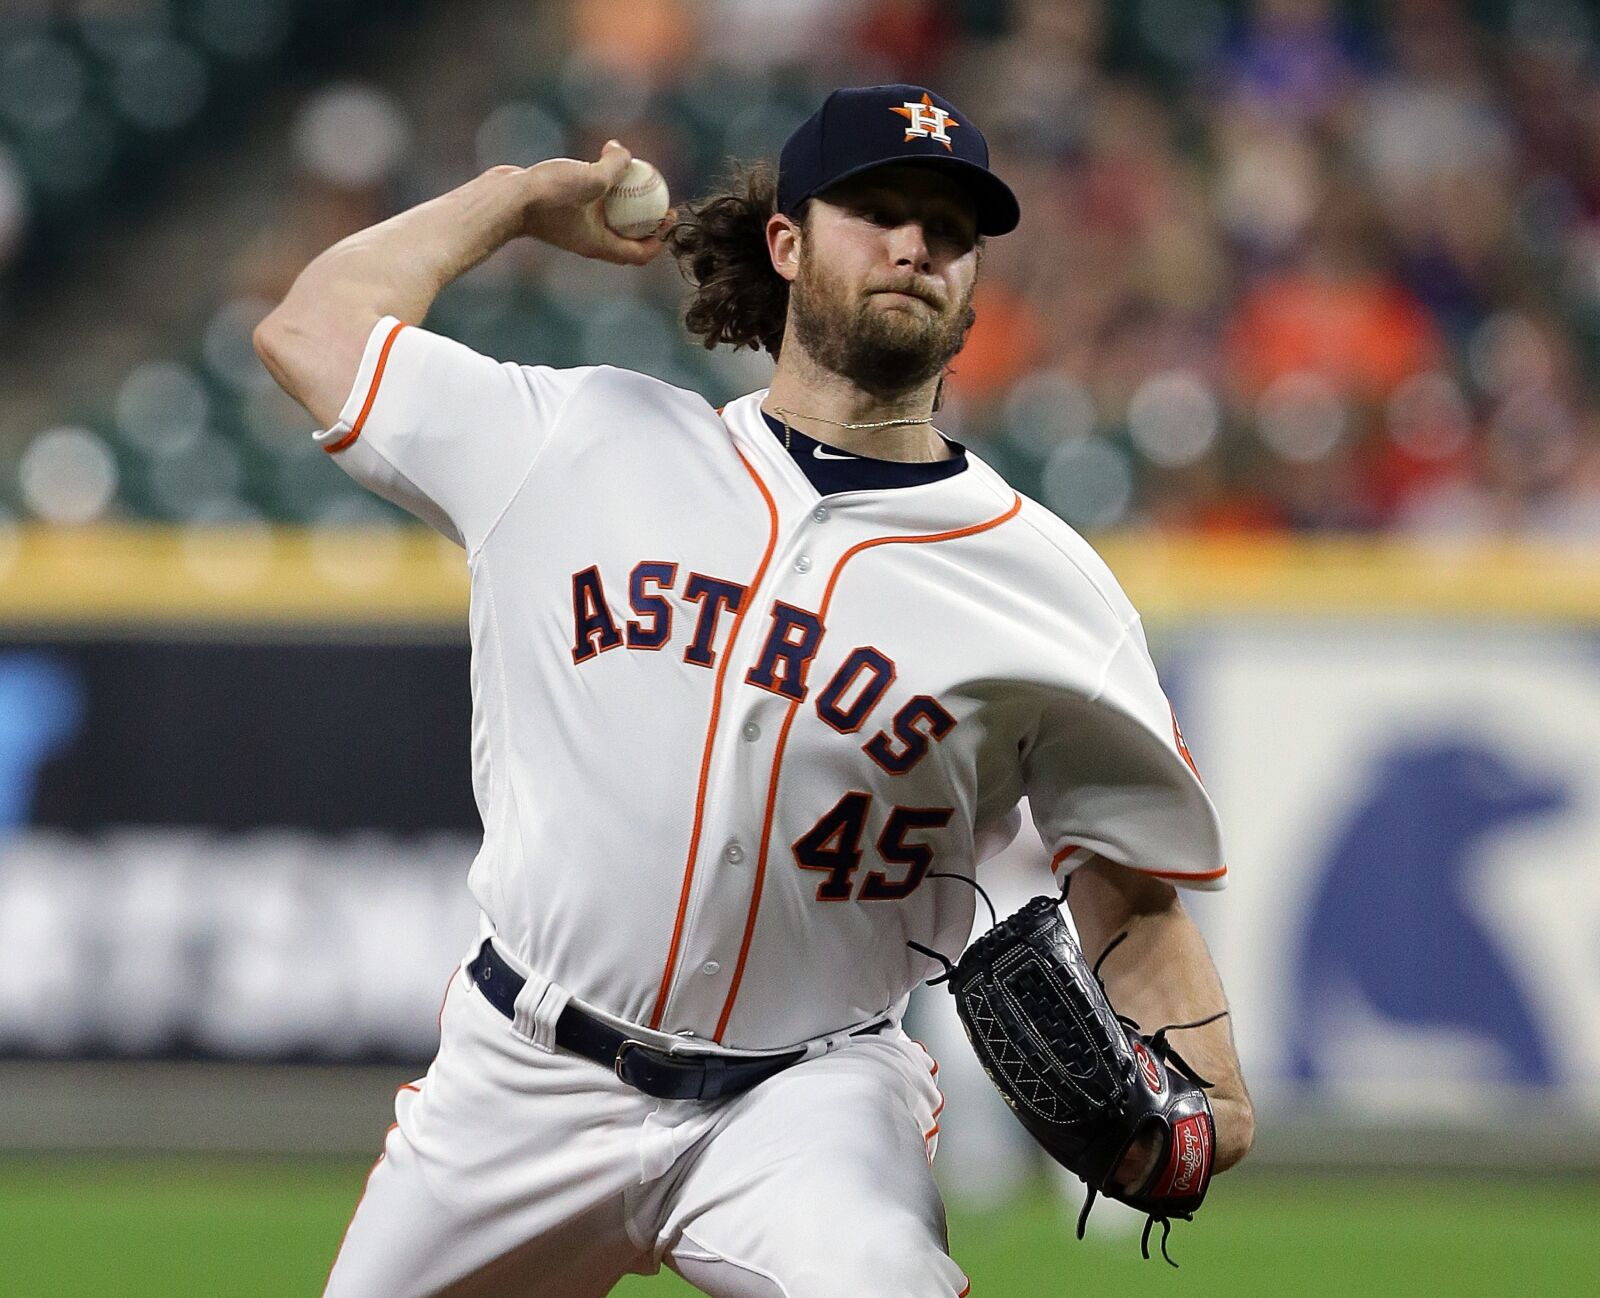 Houston Astros: Gerrit Cole making case as best pitcher in game